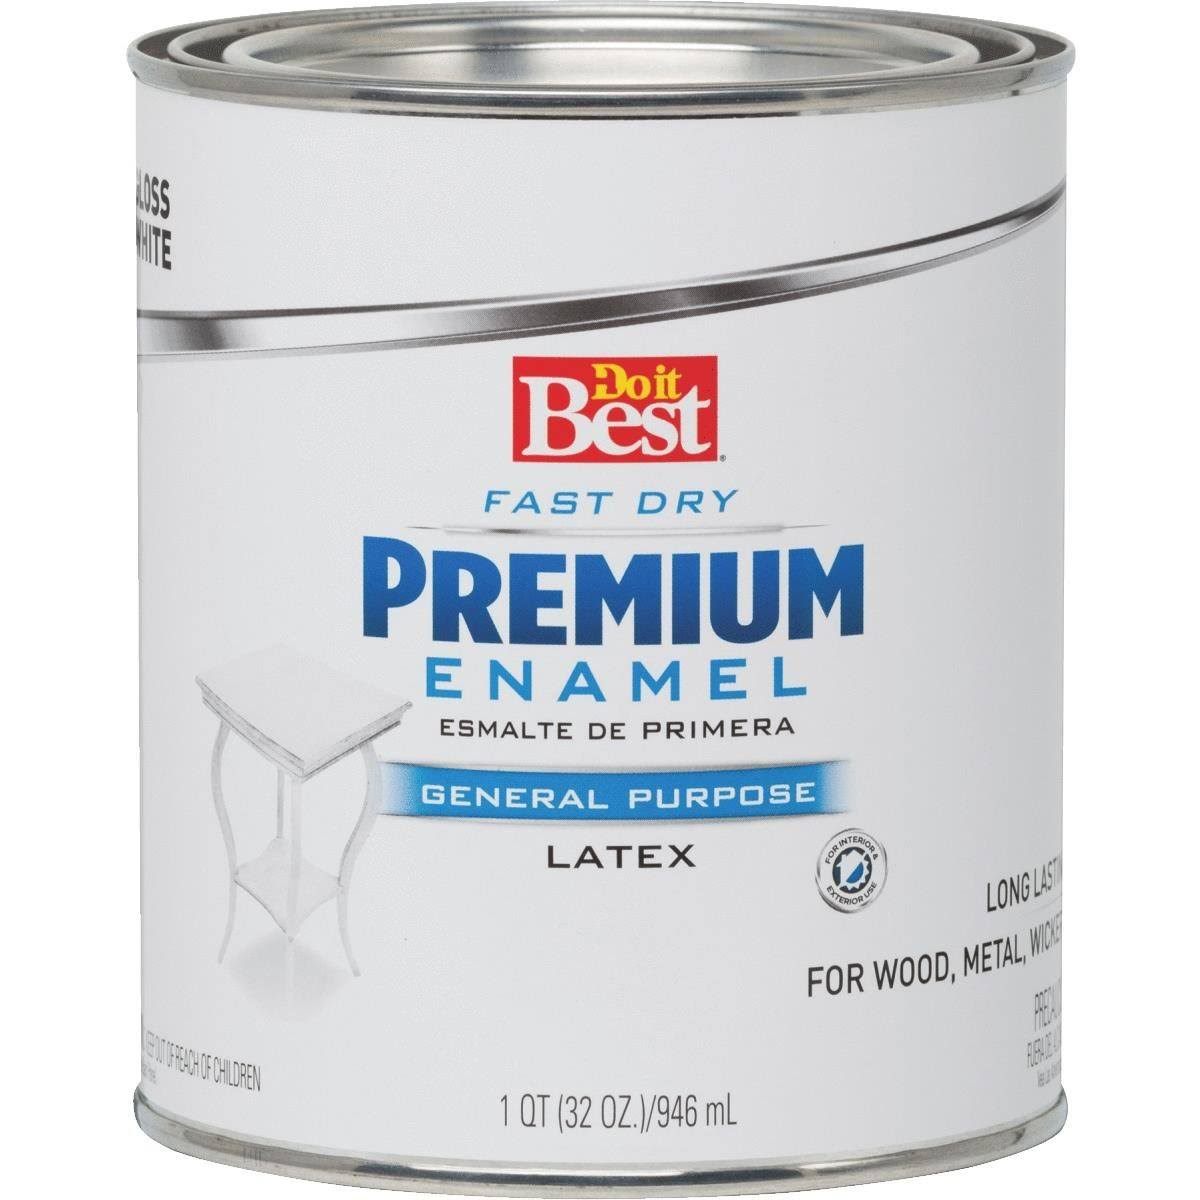 Rust Oleum Do it Best Premium Latex Enamel - White, 1qt